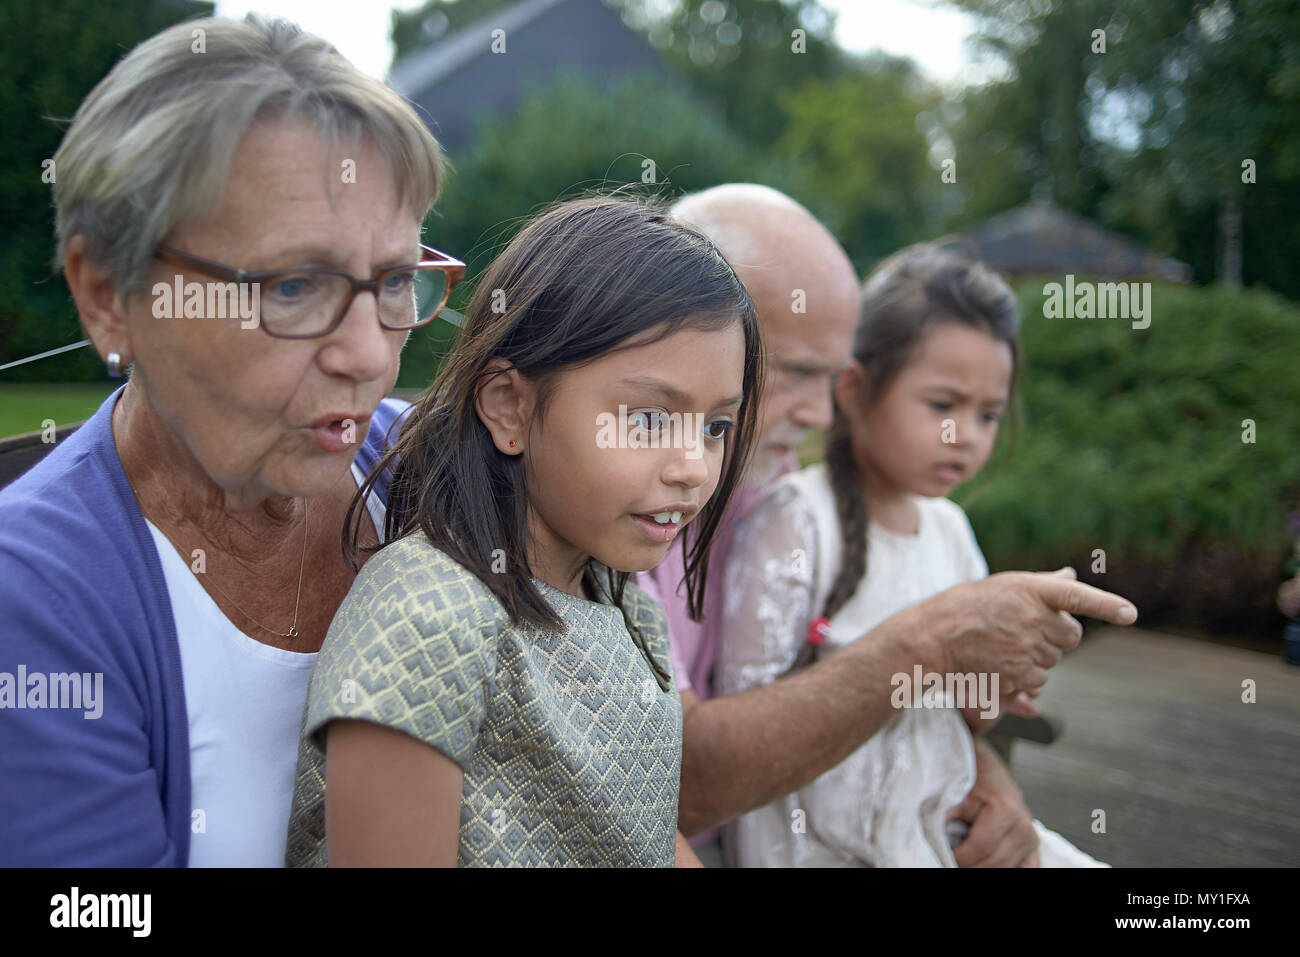 Family portrait of an elderly caucasian couple and their mixed race grandchildren in an unposed natural setting in the back yard in summer sunshine - Stock Image